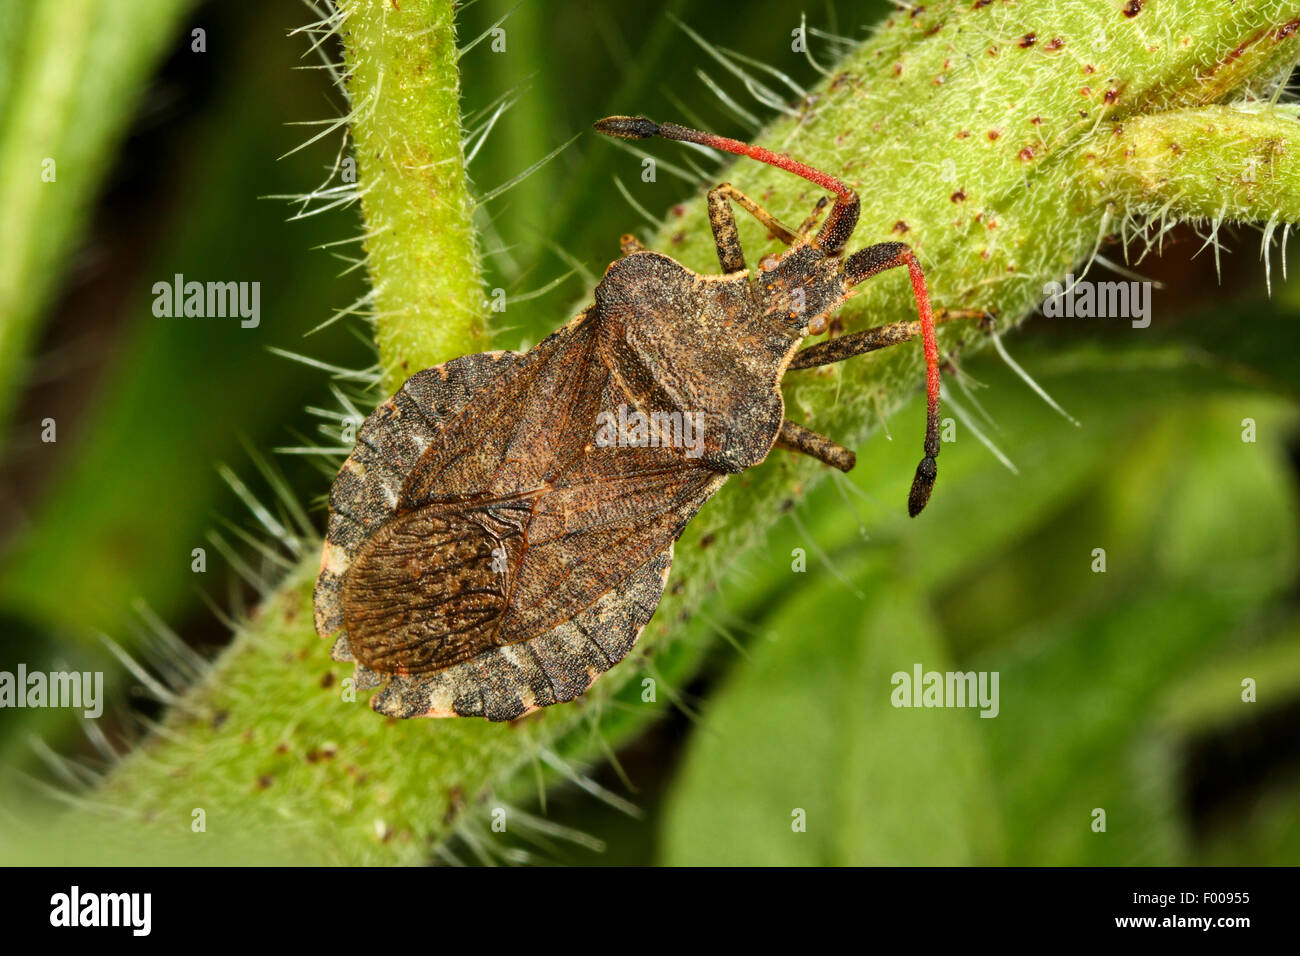 Leaf-footed bugs (Enoplops scapha), at a stem, Germany - Stock Image